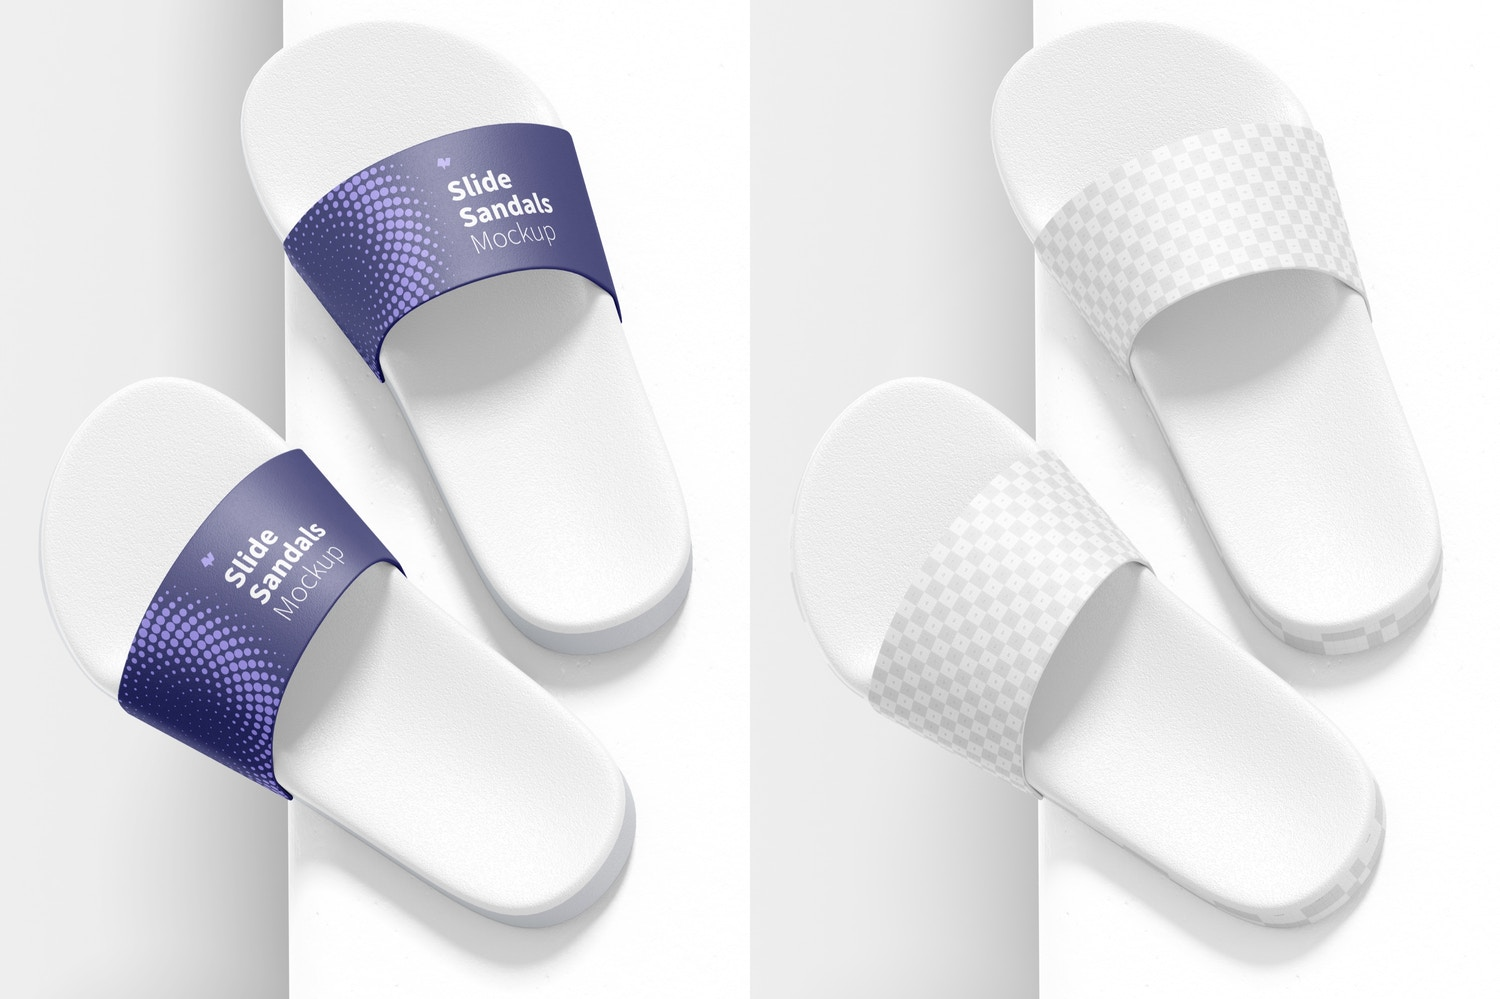 Slide Sandals Mockup, Right View